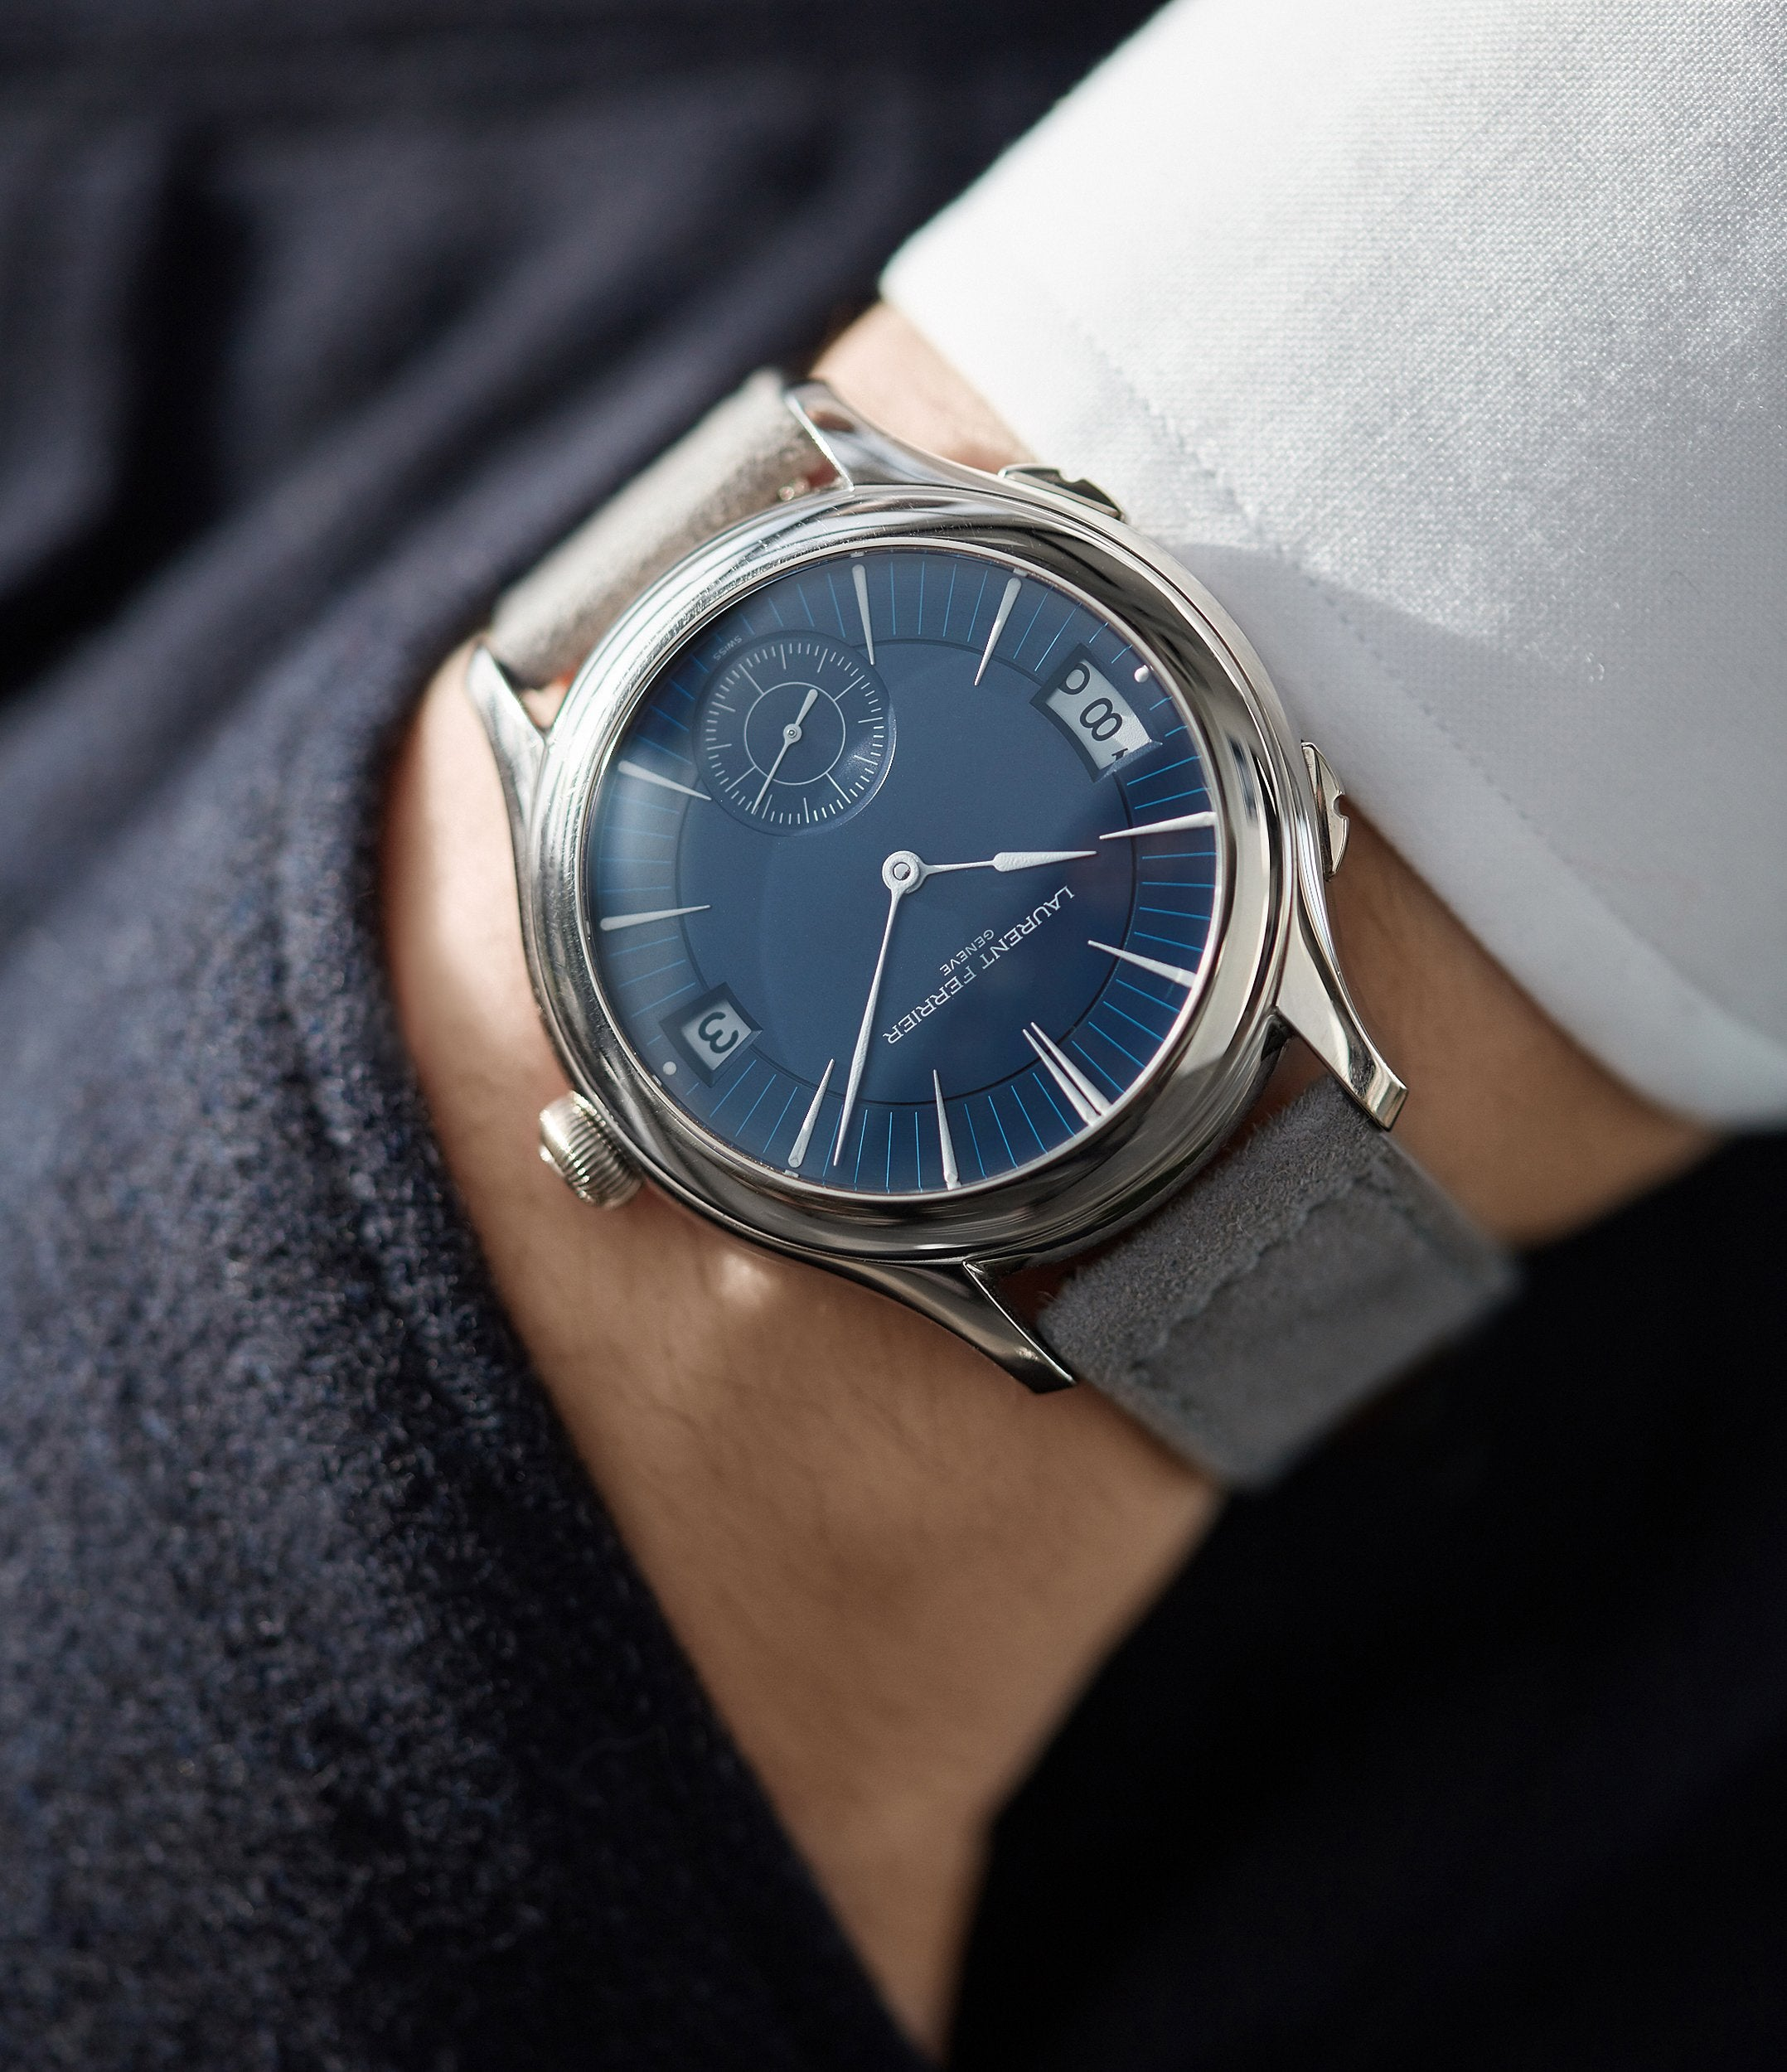 men's blue dial wristwatch Laurent Ferrier Galet Traveller Micro-rotor pre-owned watch for sale online A Collected Man London UK specialist independent watchmakers